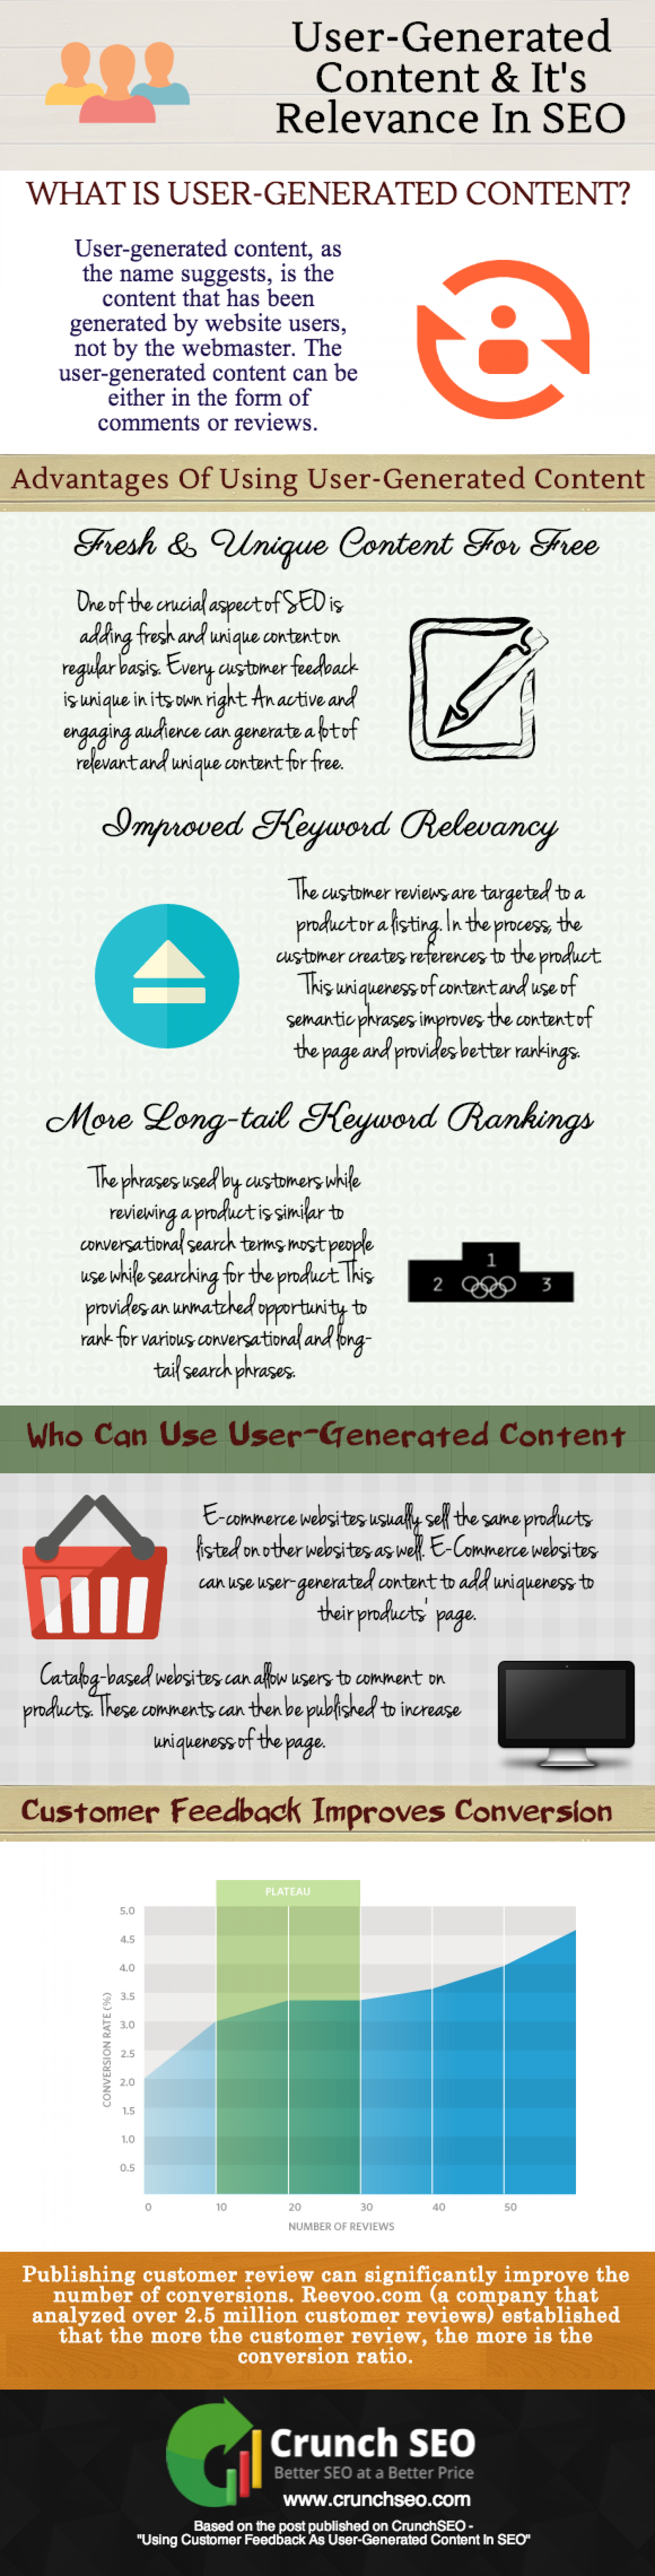 User-Generated Content & It's Relevance In SEO Infographic